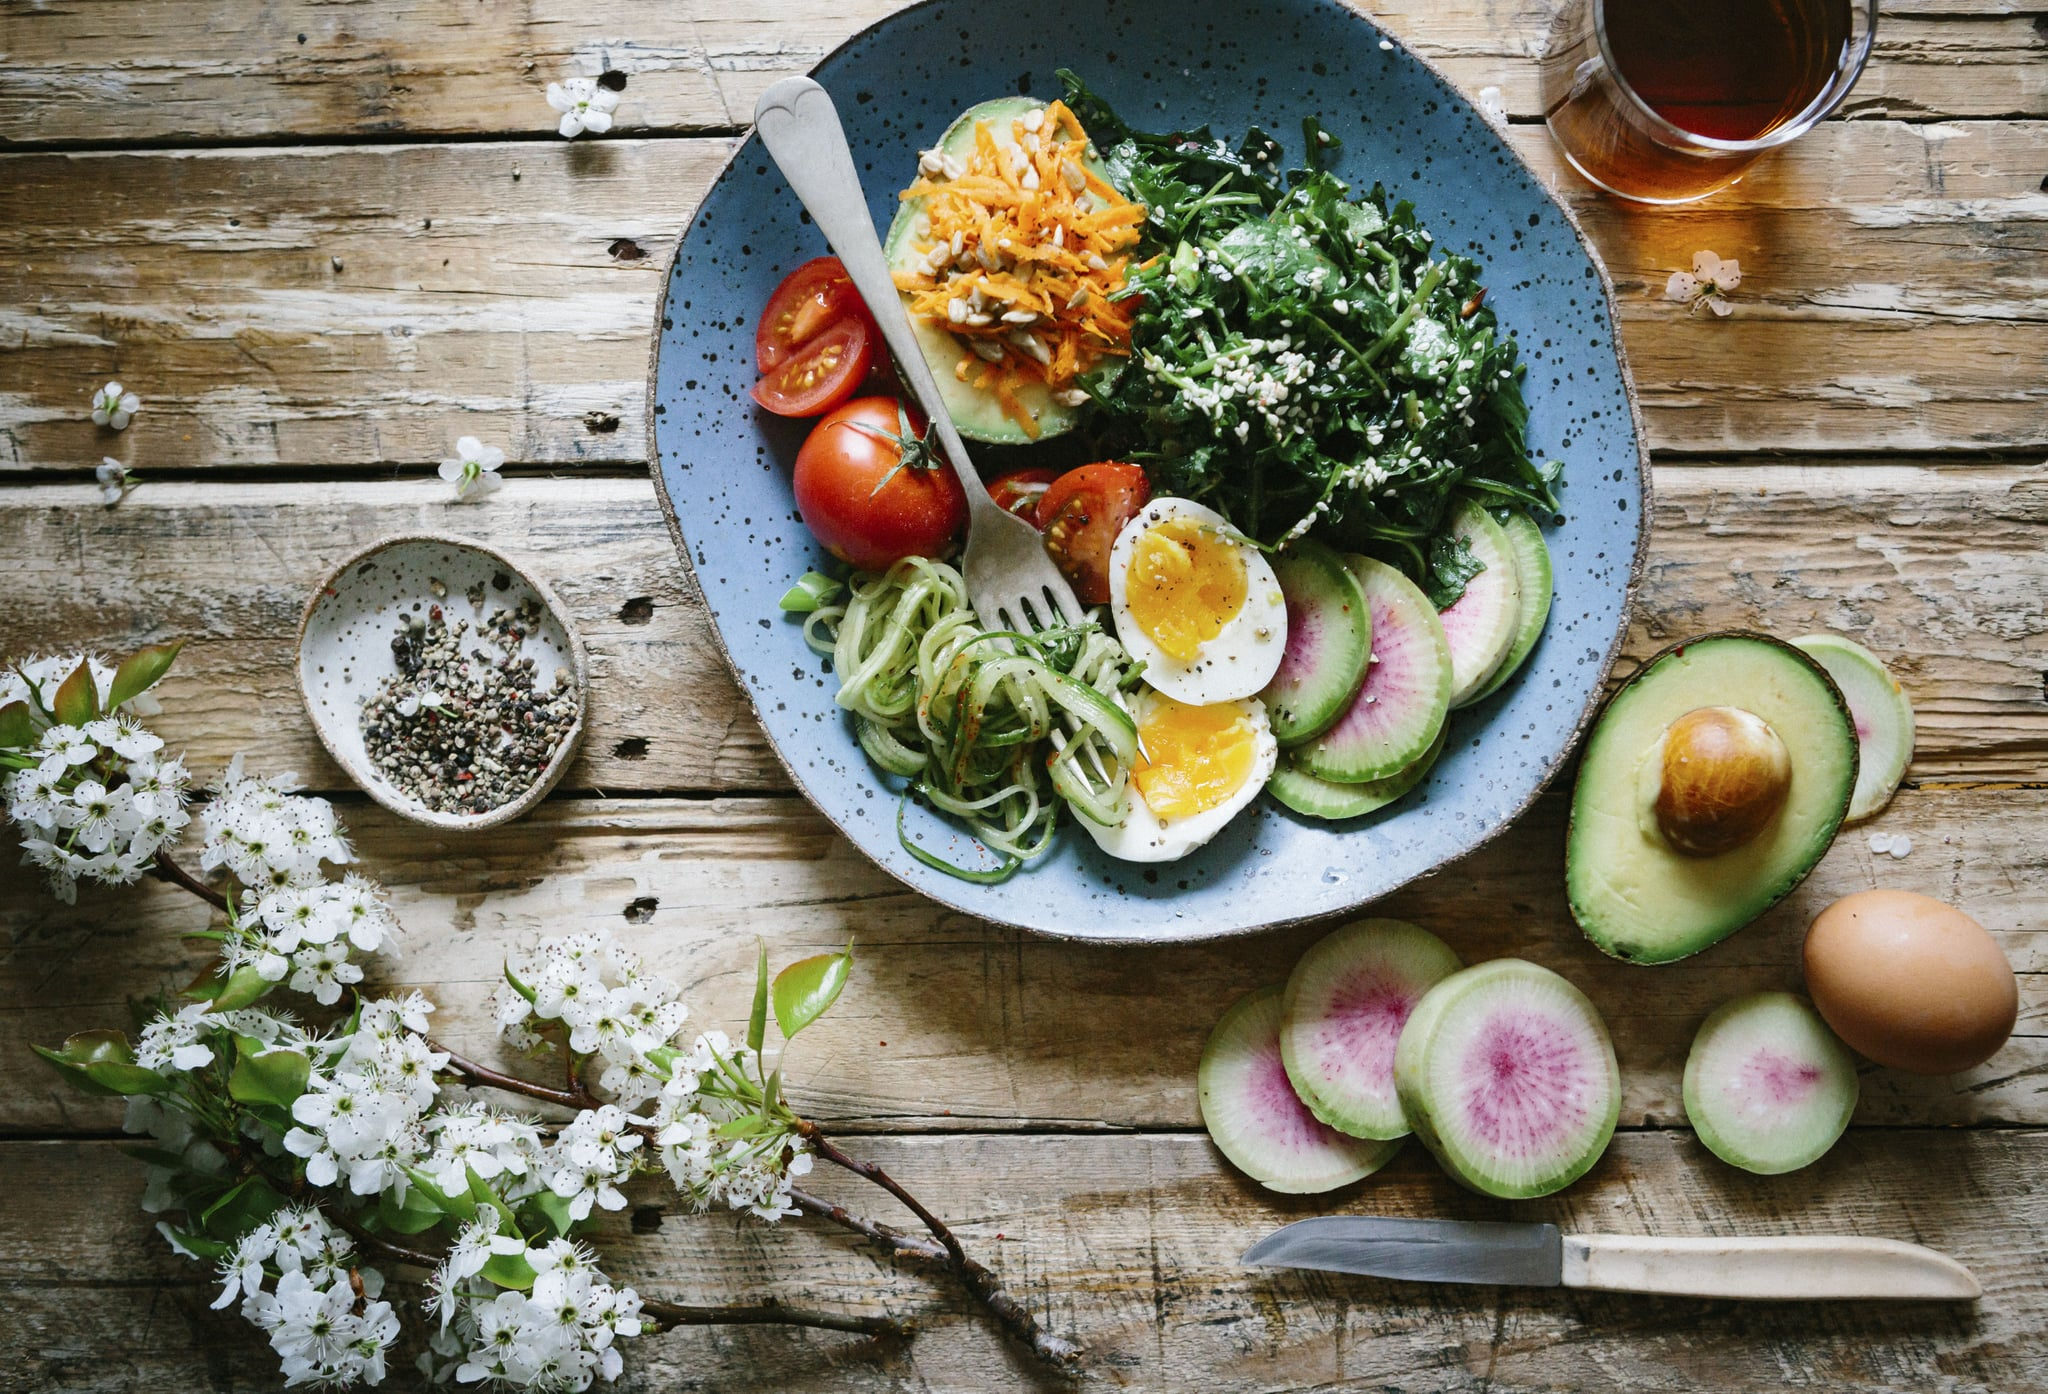 Whole30: The Skinny on What You Can — and Can't — Eat